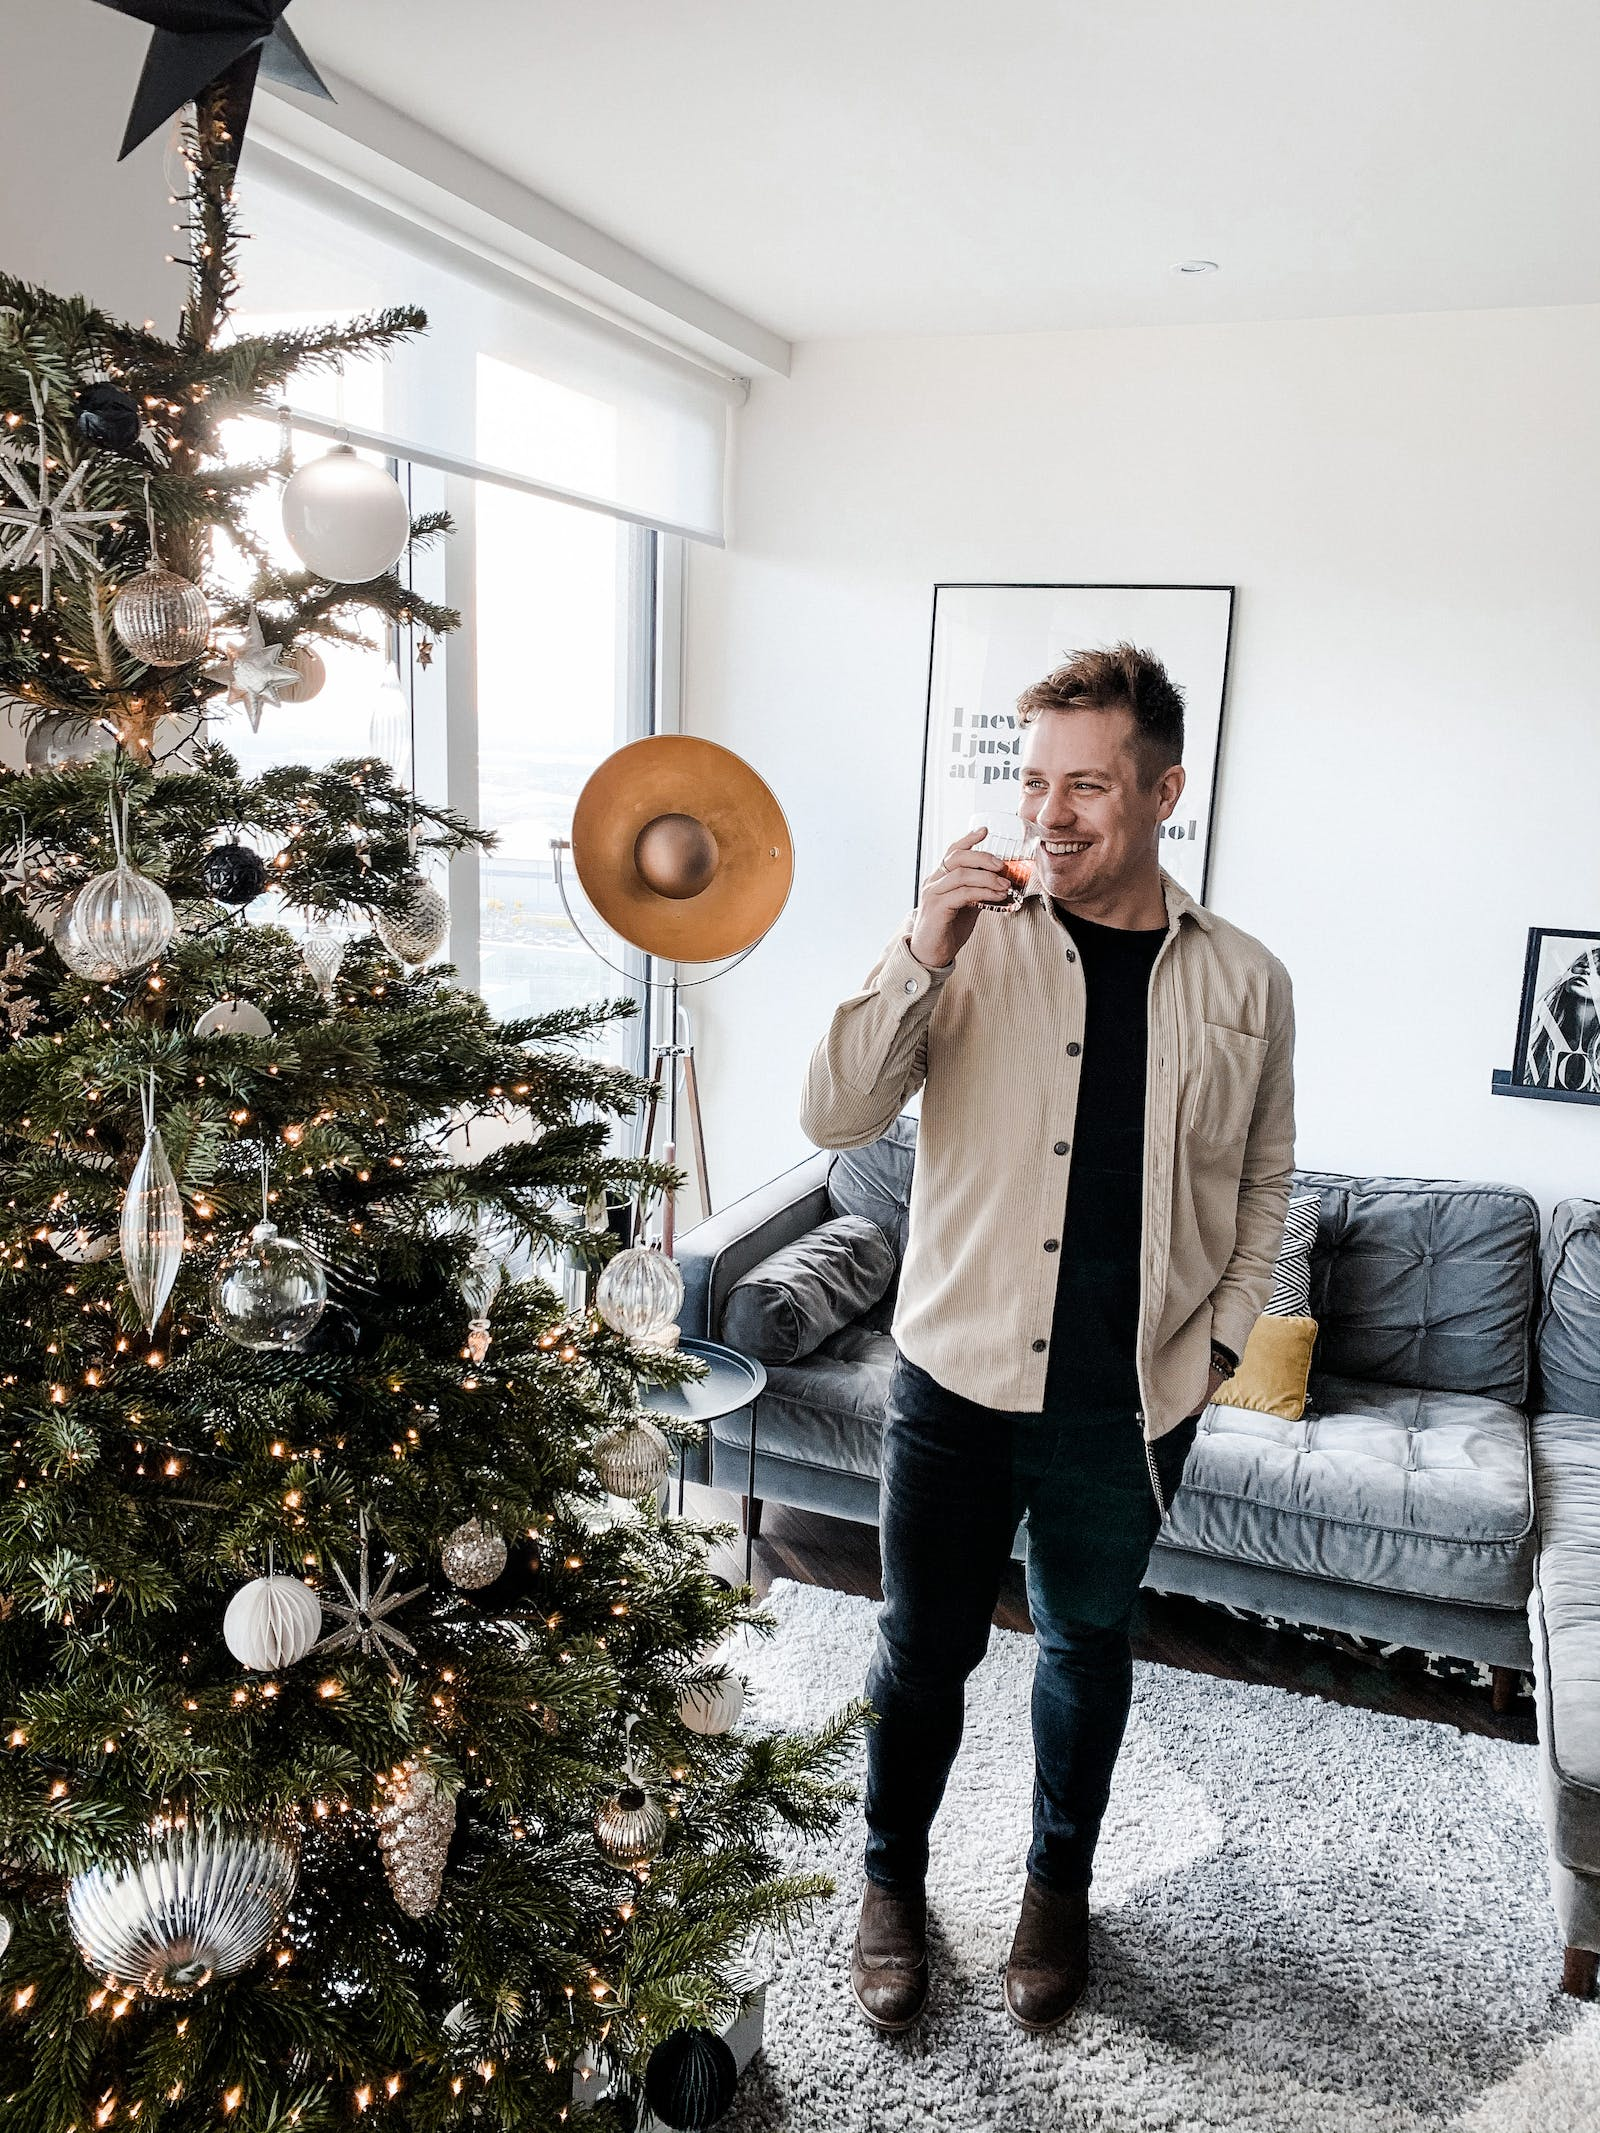 Man standing next to Christmas tree, drinking mulled wine